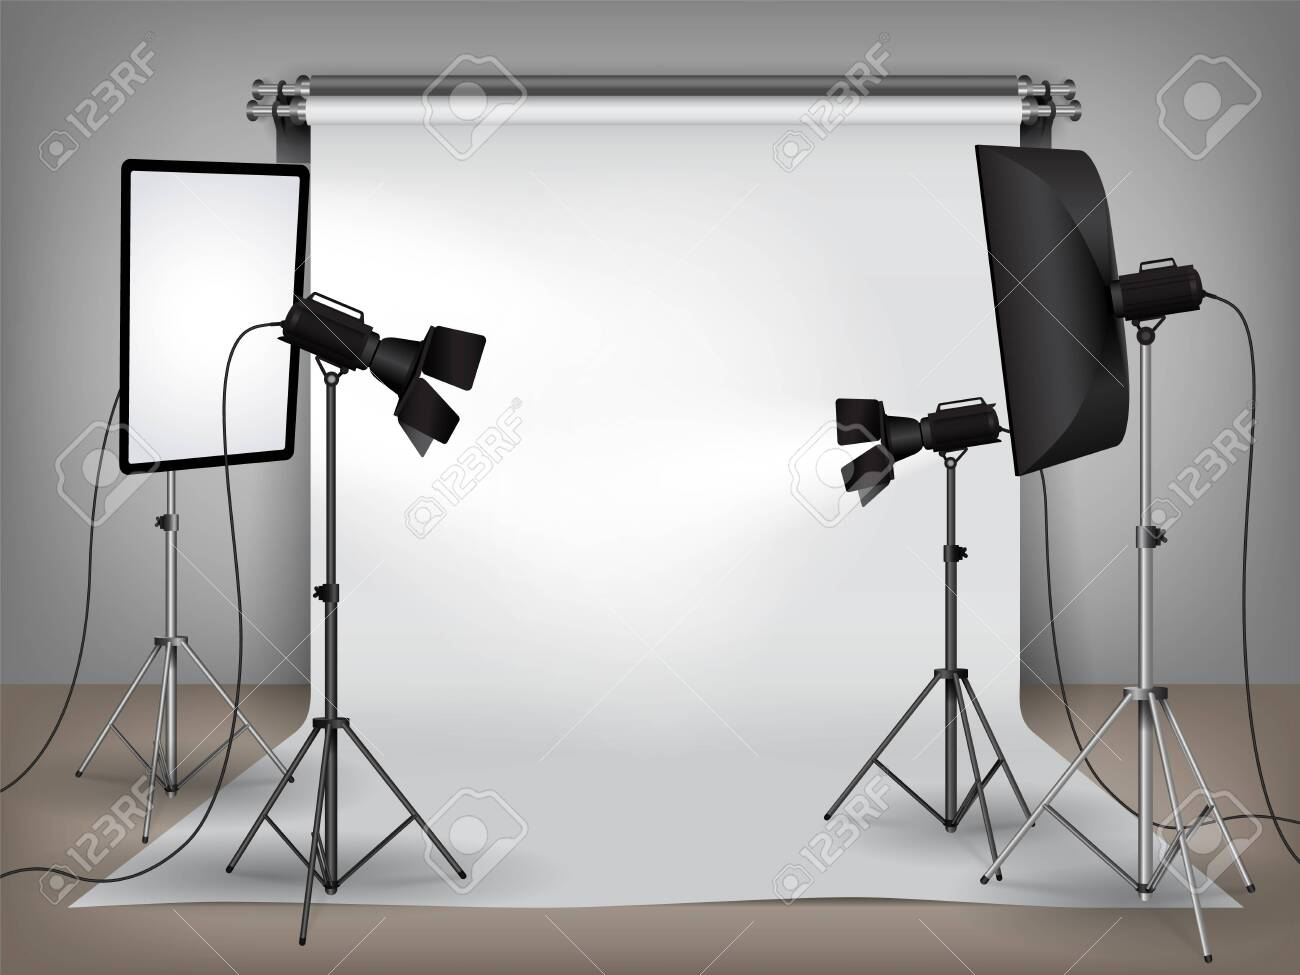 Realistic photo studio with lighting, softboxes on tripod stands and spotlights equipment and white backdrop, photo background mock up vector illustration - 123079252